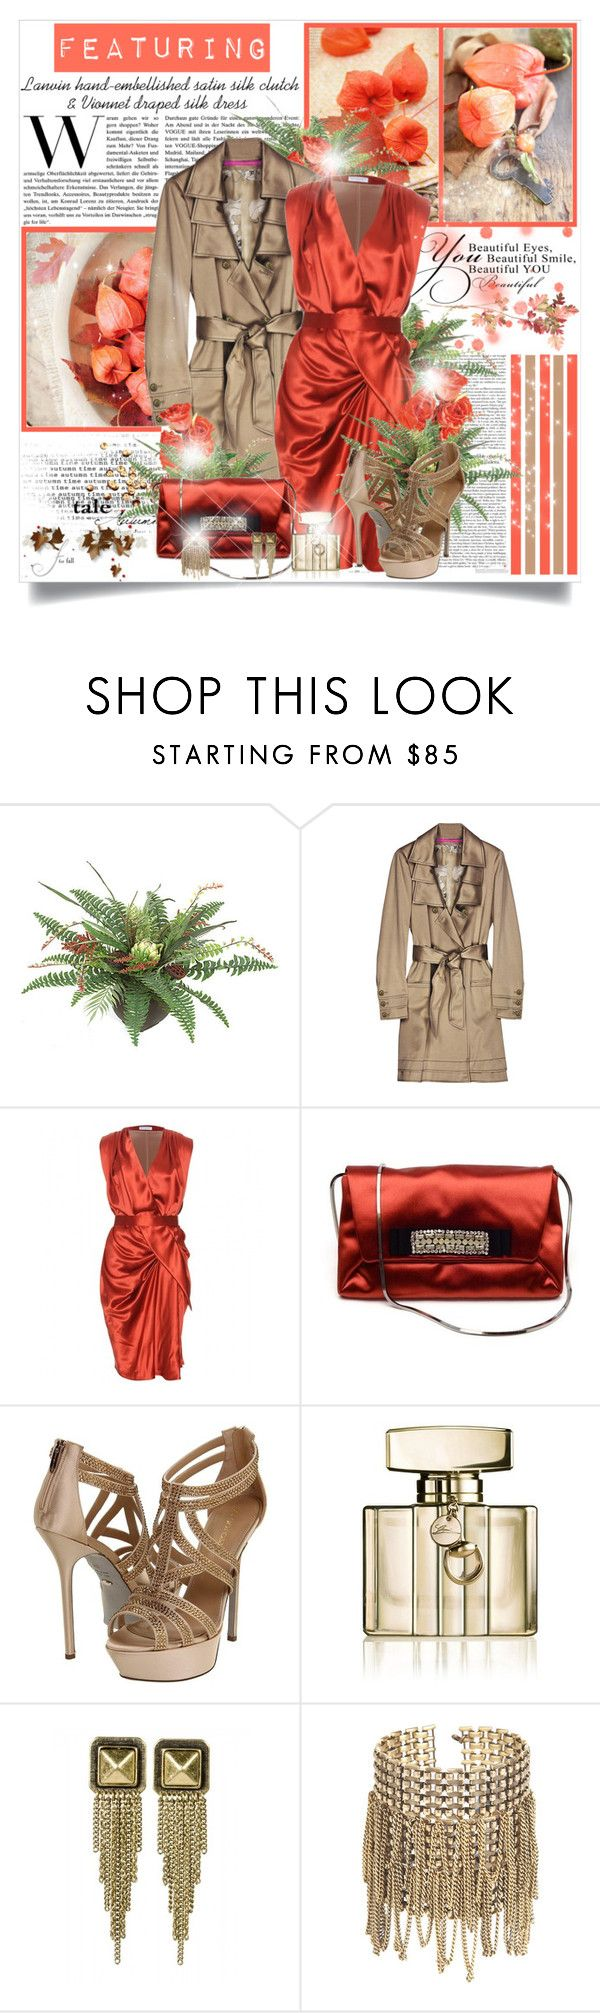 """Autumn Tale of Love"" by mrstom ❤ liked on Polyvore featuring Emanuel Ungaro, Vionnet, Lanvin, Sergio Rossi, Gucci, Jules Smith and Ellen Arthur"